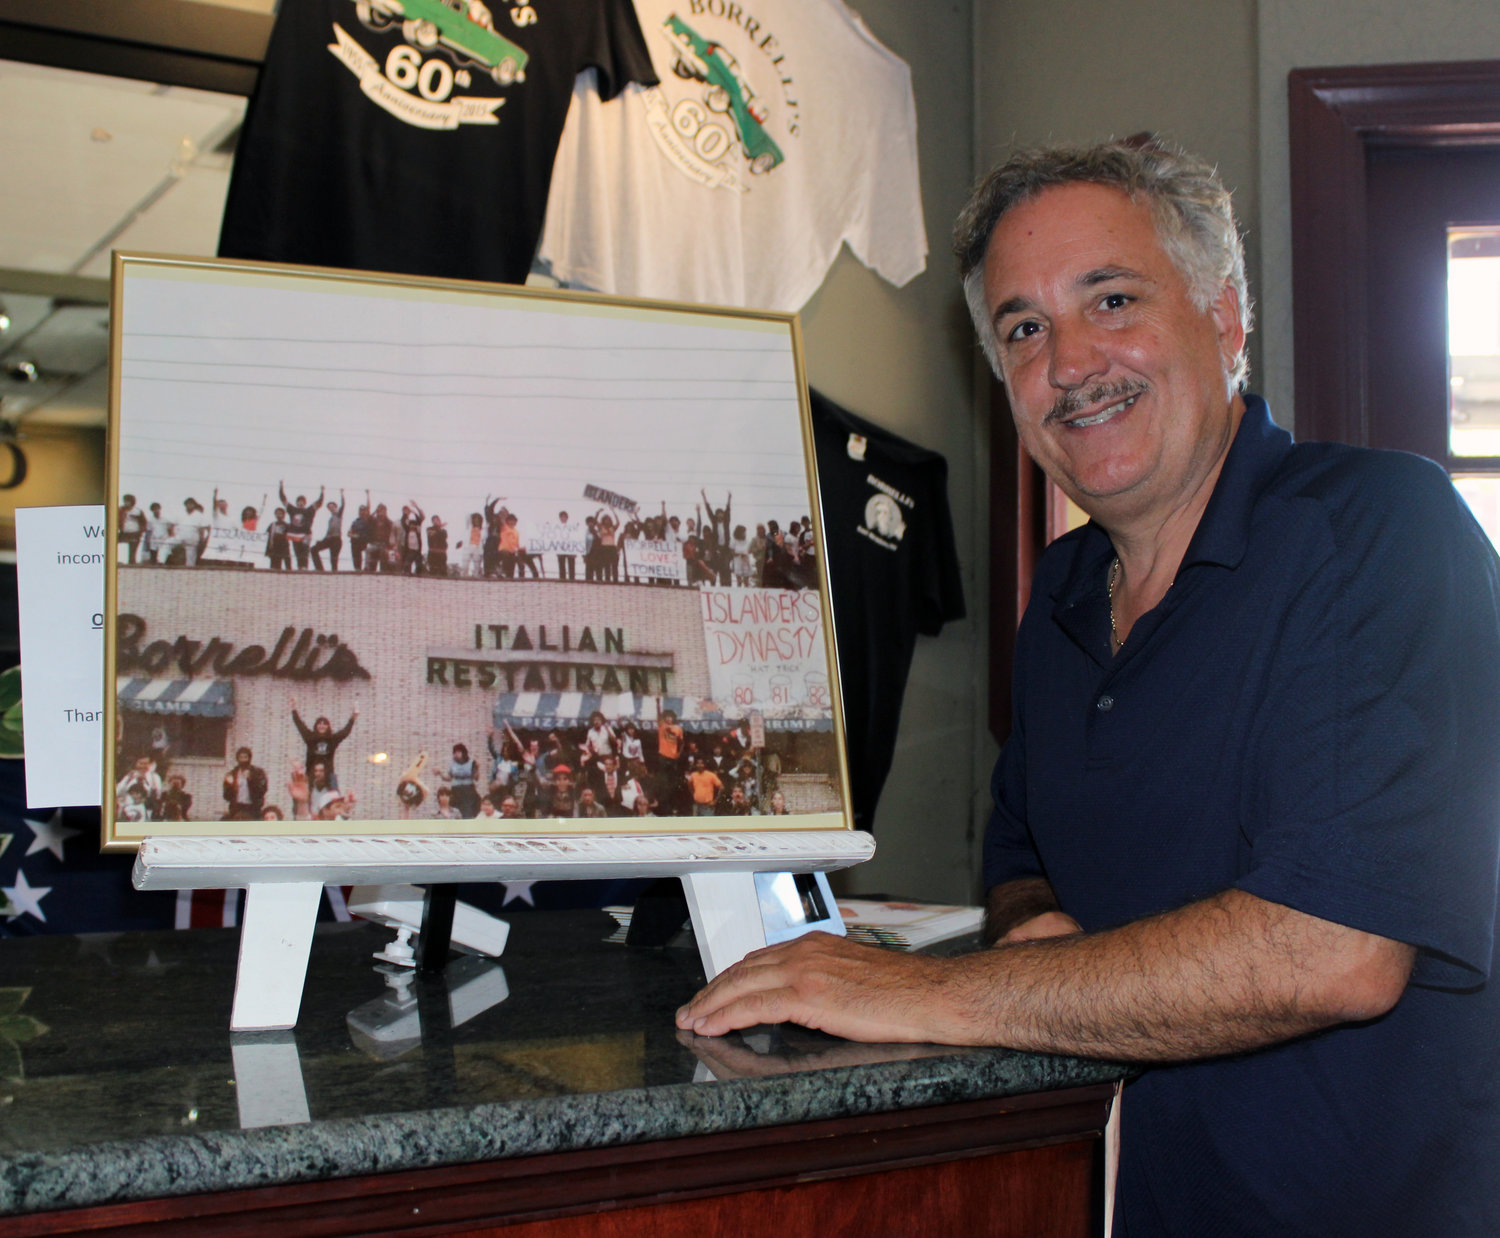 Frank Borelli remembers a spring day in 1981 when 30,000 hockey fans marched past Borelli's and down Hempstead Turnpike: The Islanders had won the second of their four Stanley Cup titles the day before.